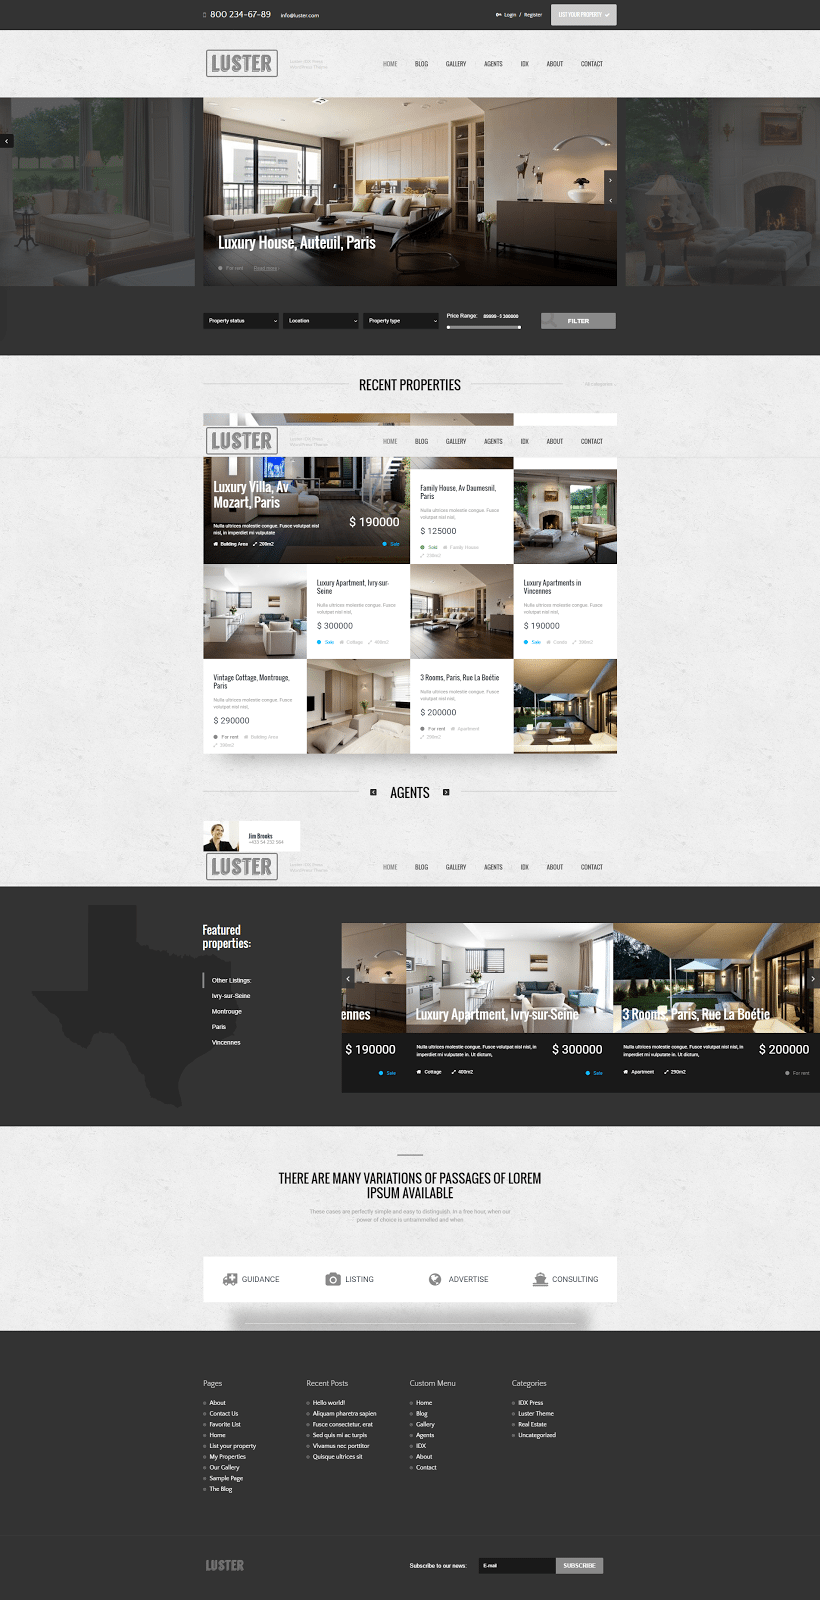 Real Estate Website Templates: 25 Examples & How to Choose